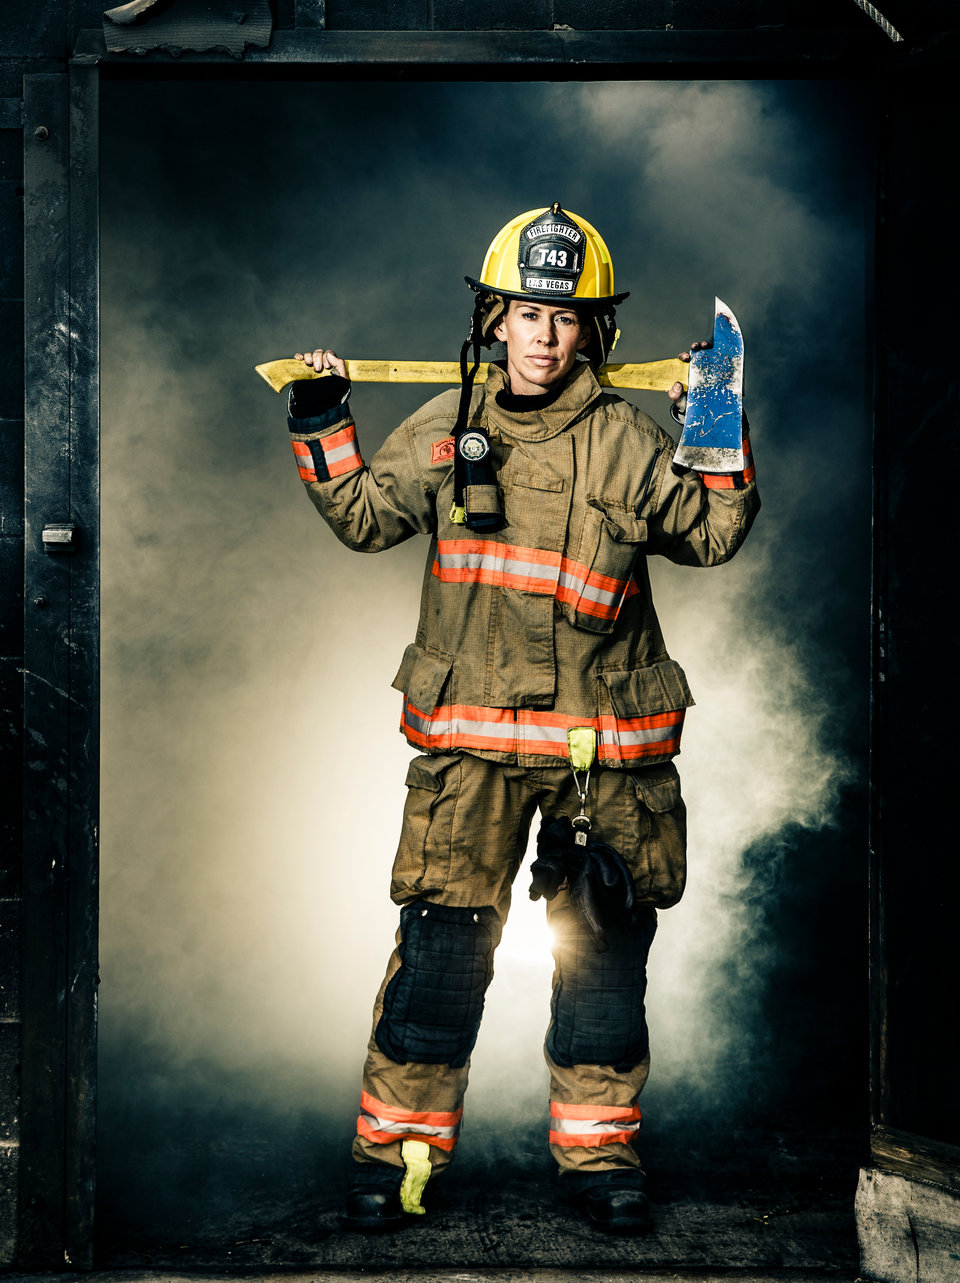 This firefighter chick is slide down my pole 10